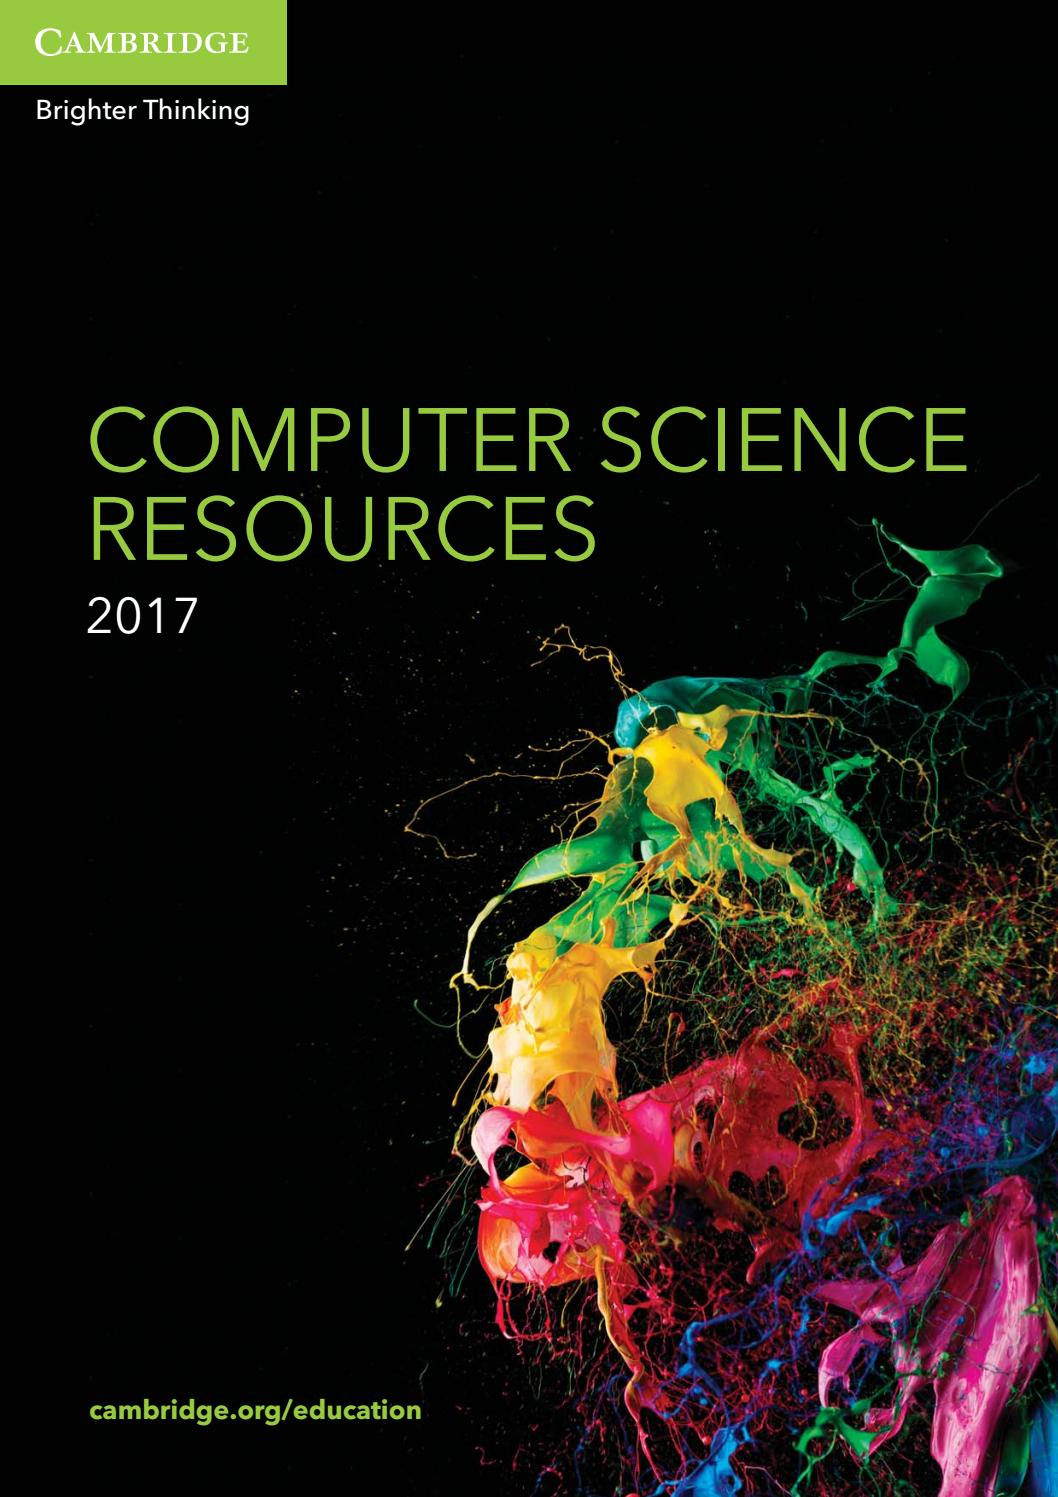 computer science resources catalogue 2017 by cambridge. Black Bedroom Furniture Sets. Home Design Ideas